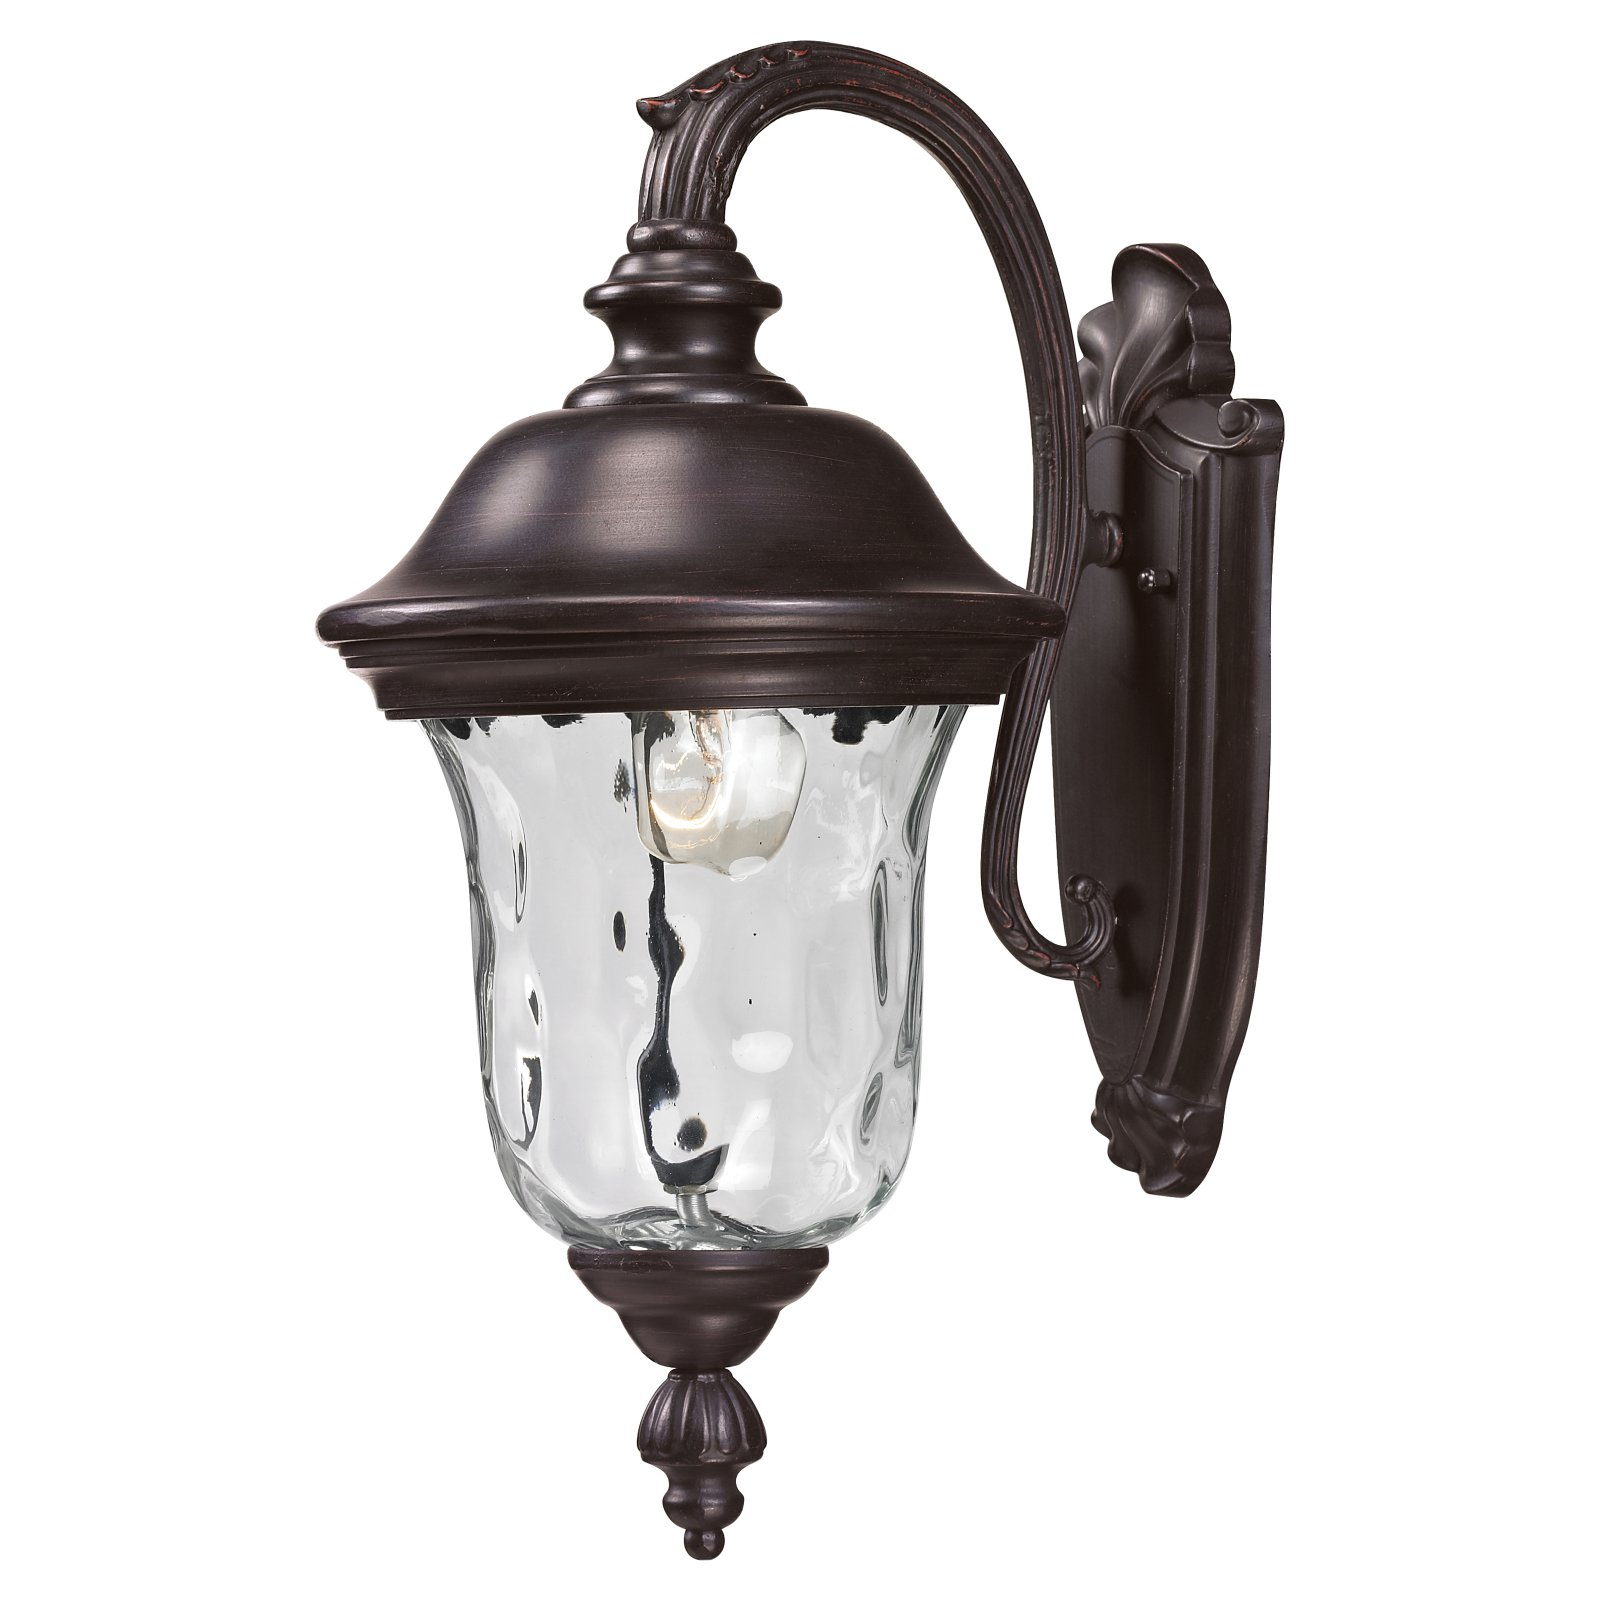 Z-Lite Armstrong Outdoor 1-Light Wall Sconce, Bronze